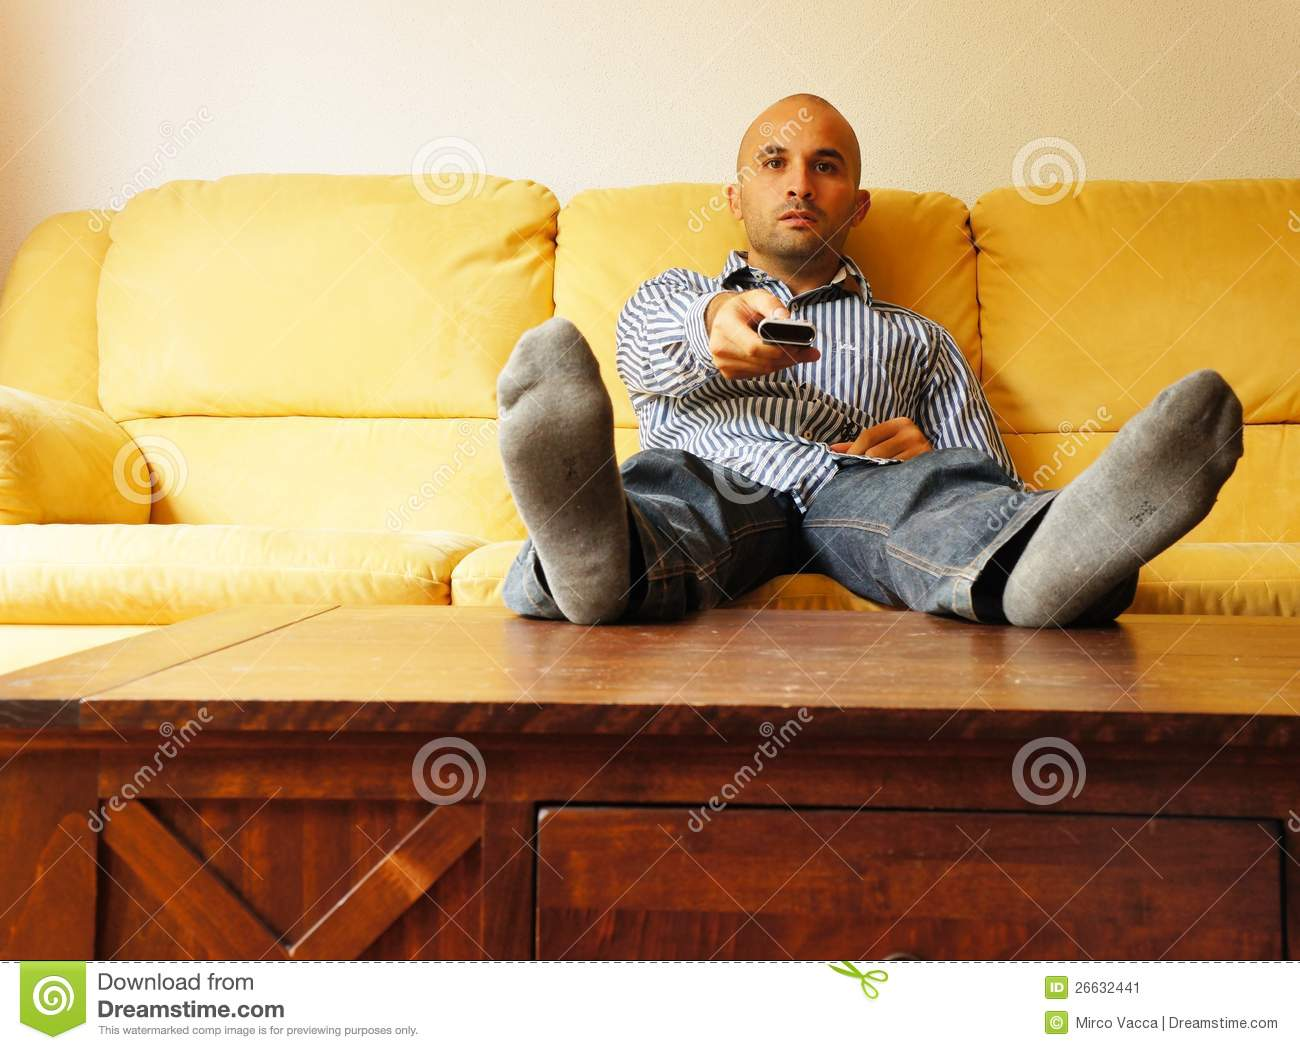 3 Person Couch Lazy Man Stock Image. Image Of Person, Laziness, Resting